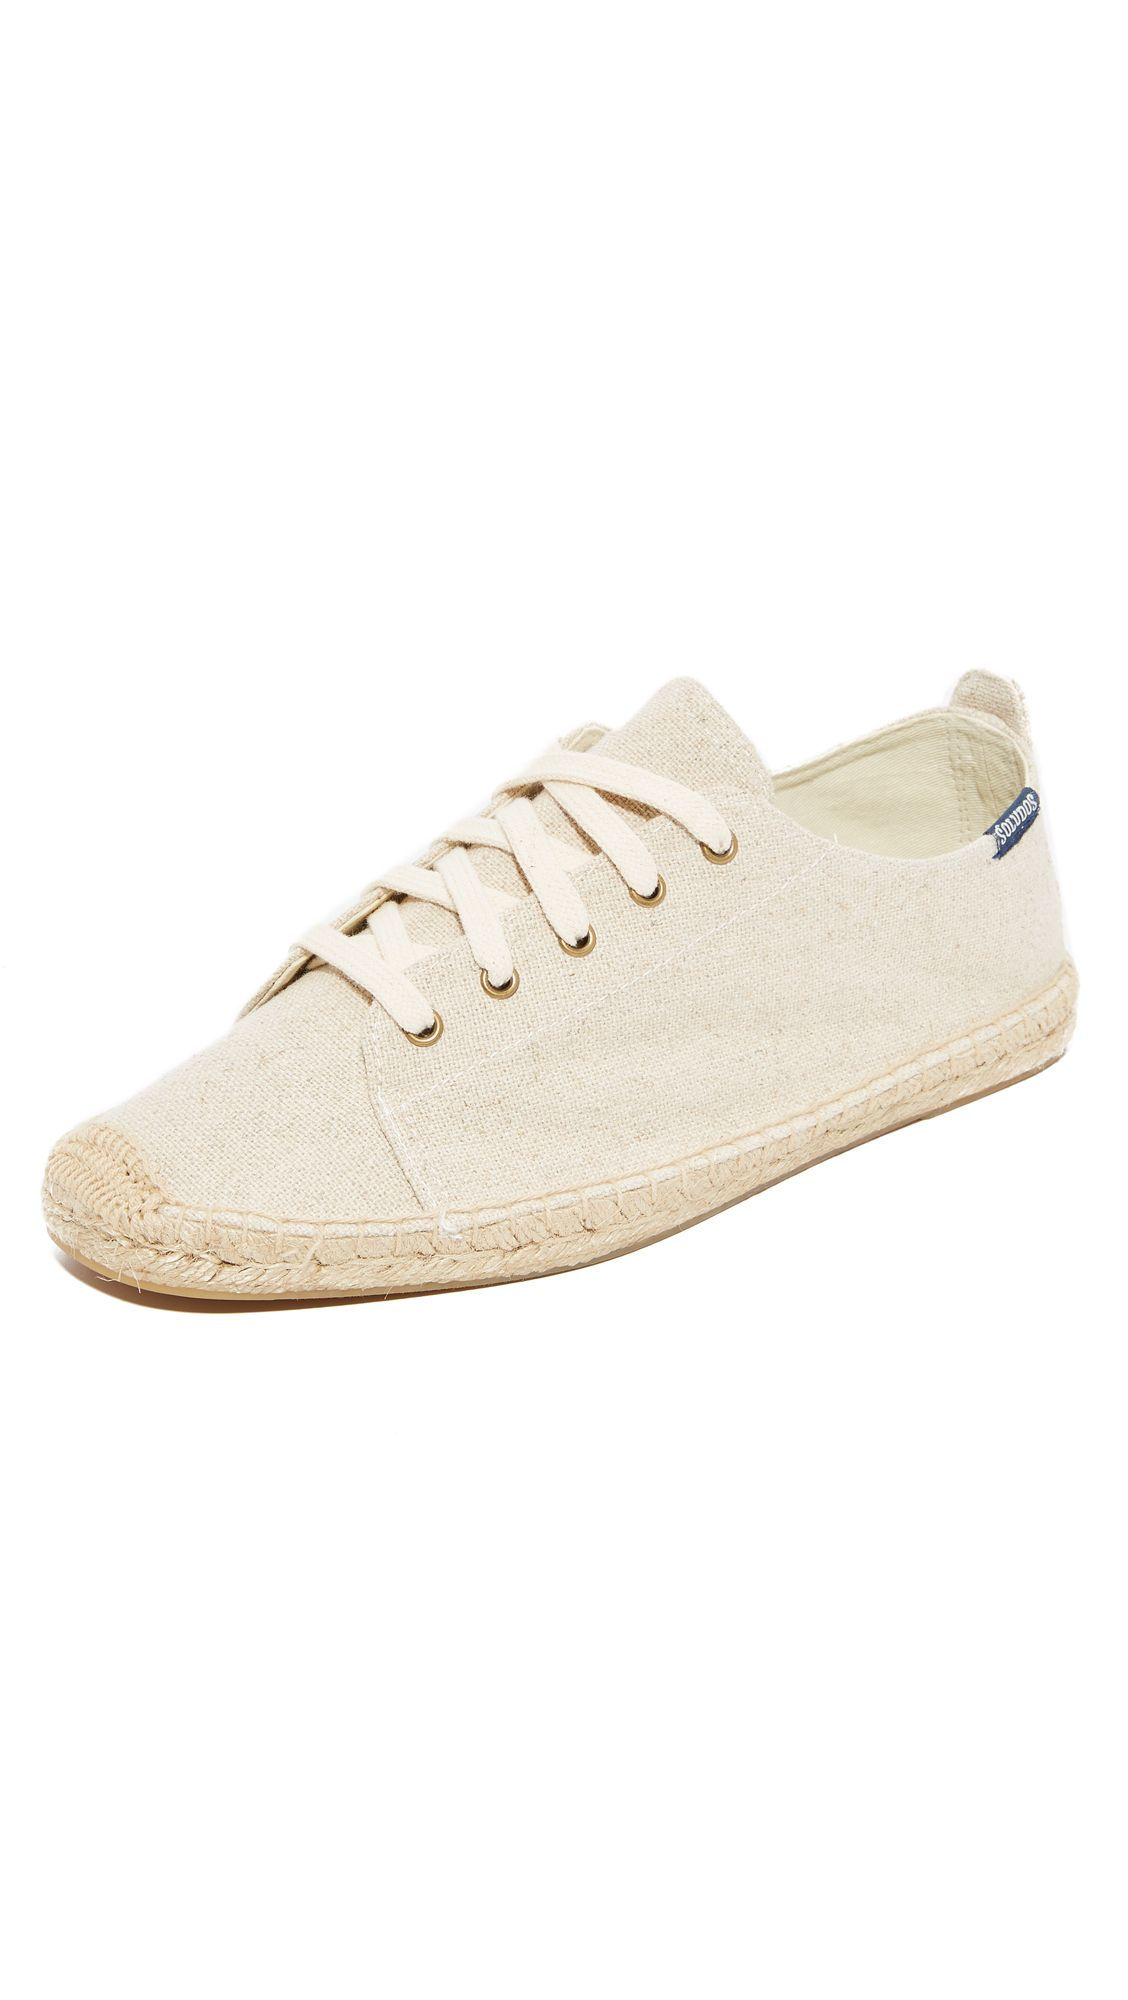 0a2e4bd69a945 SOLUDOS Canvas Lace Up Sneakers. #soludos #shoes #sneakers   Soludos ...